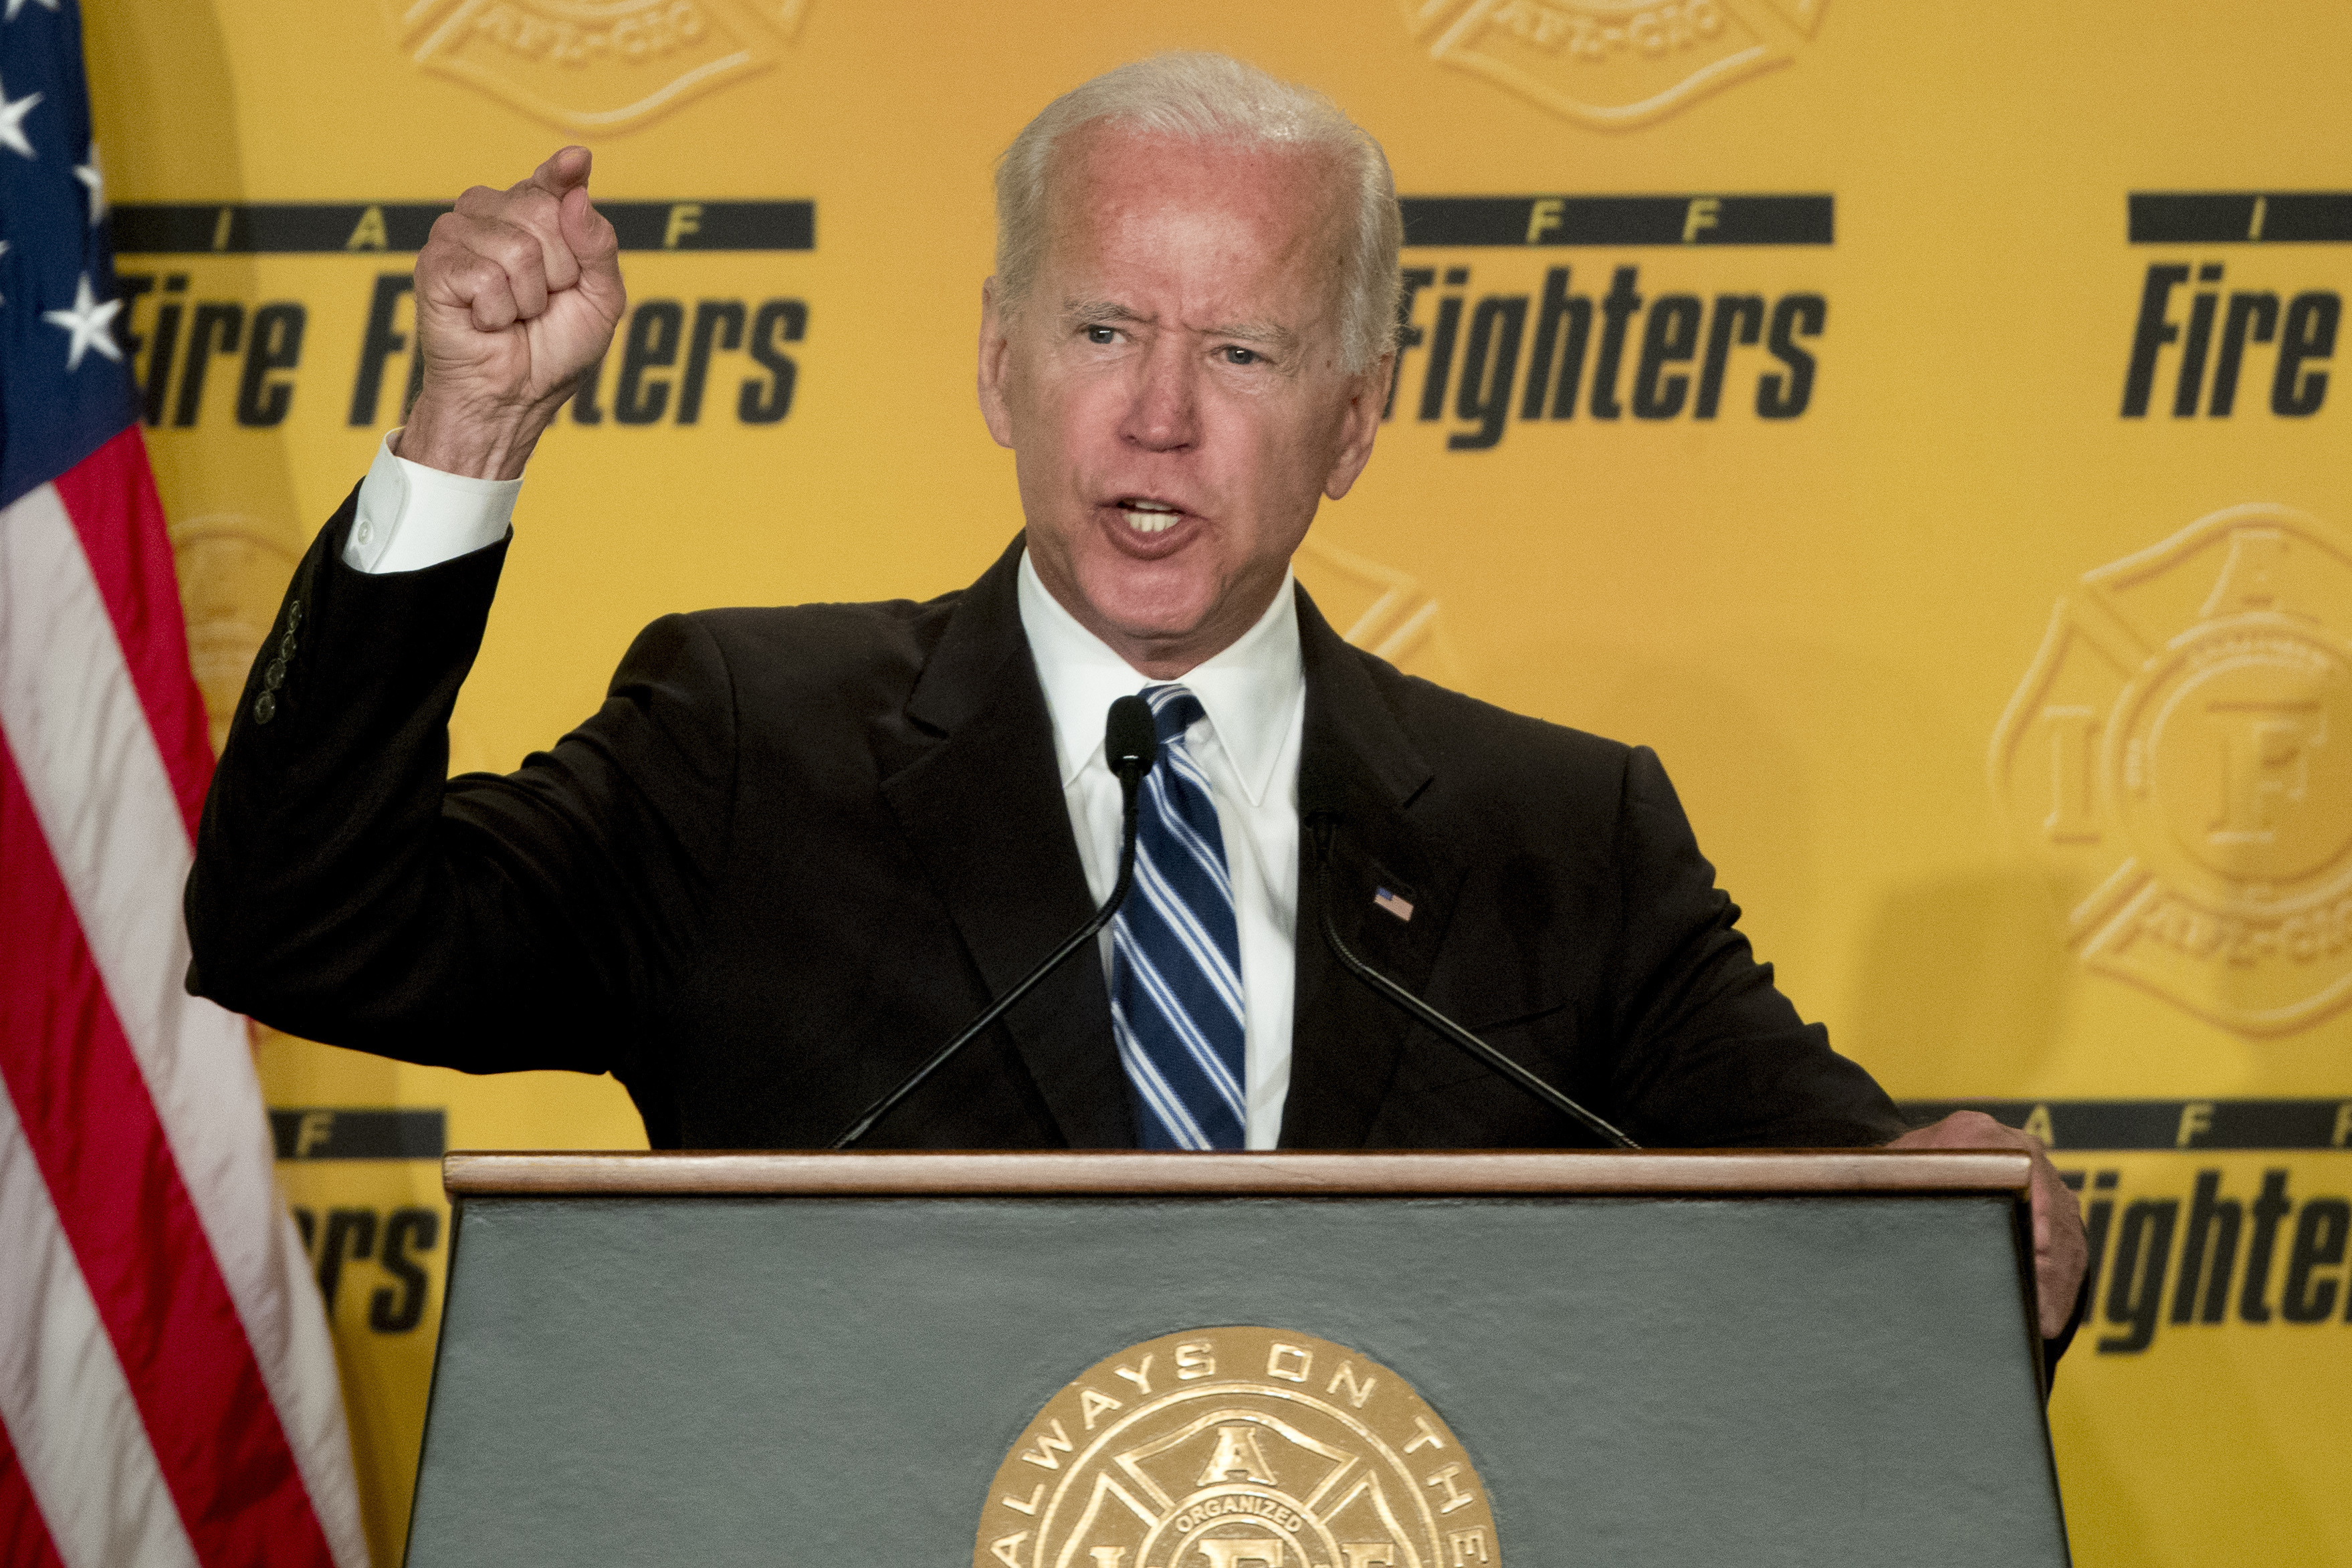 FILE - In this March 12, 2019 photo, former Vice President Joe Biden speaks to the International Association of Firefighters at the Hyatt Regency on Capitol Hill in Washington. ormer President Barack Obama's administration. (AP Photo/Andrew Harnik)